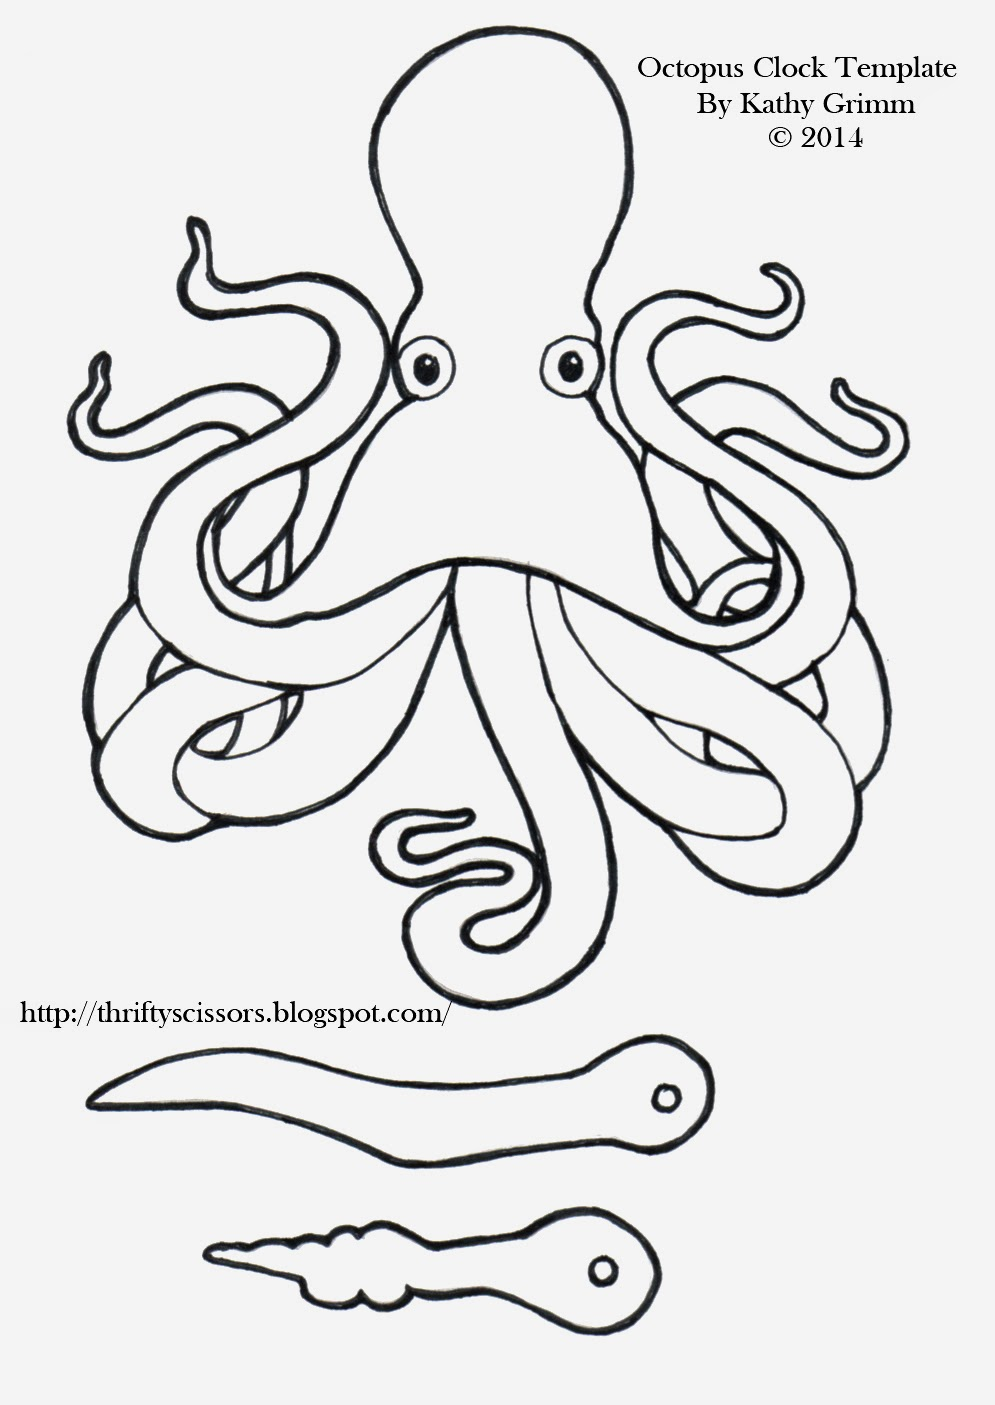 octopus clock craft thrifty scissors. Black Bedroom Furniture Sets. Home Design Ideas